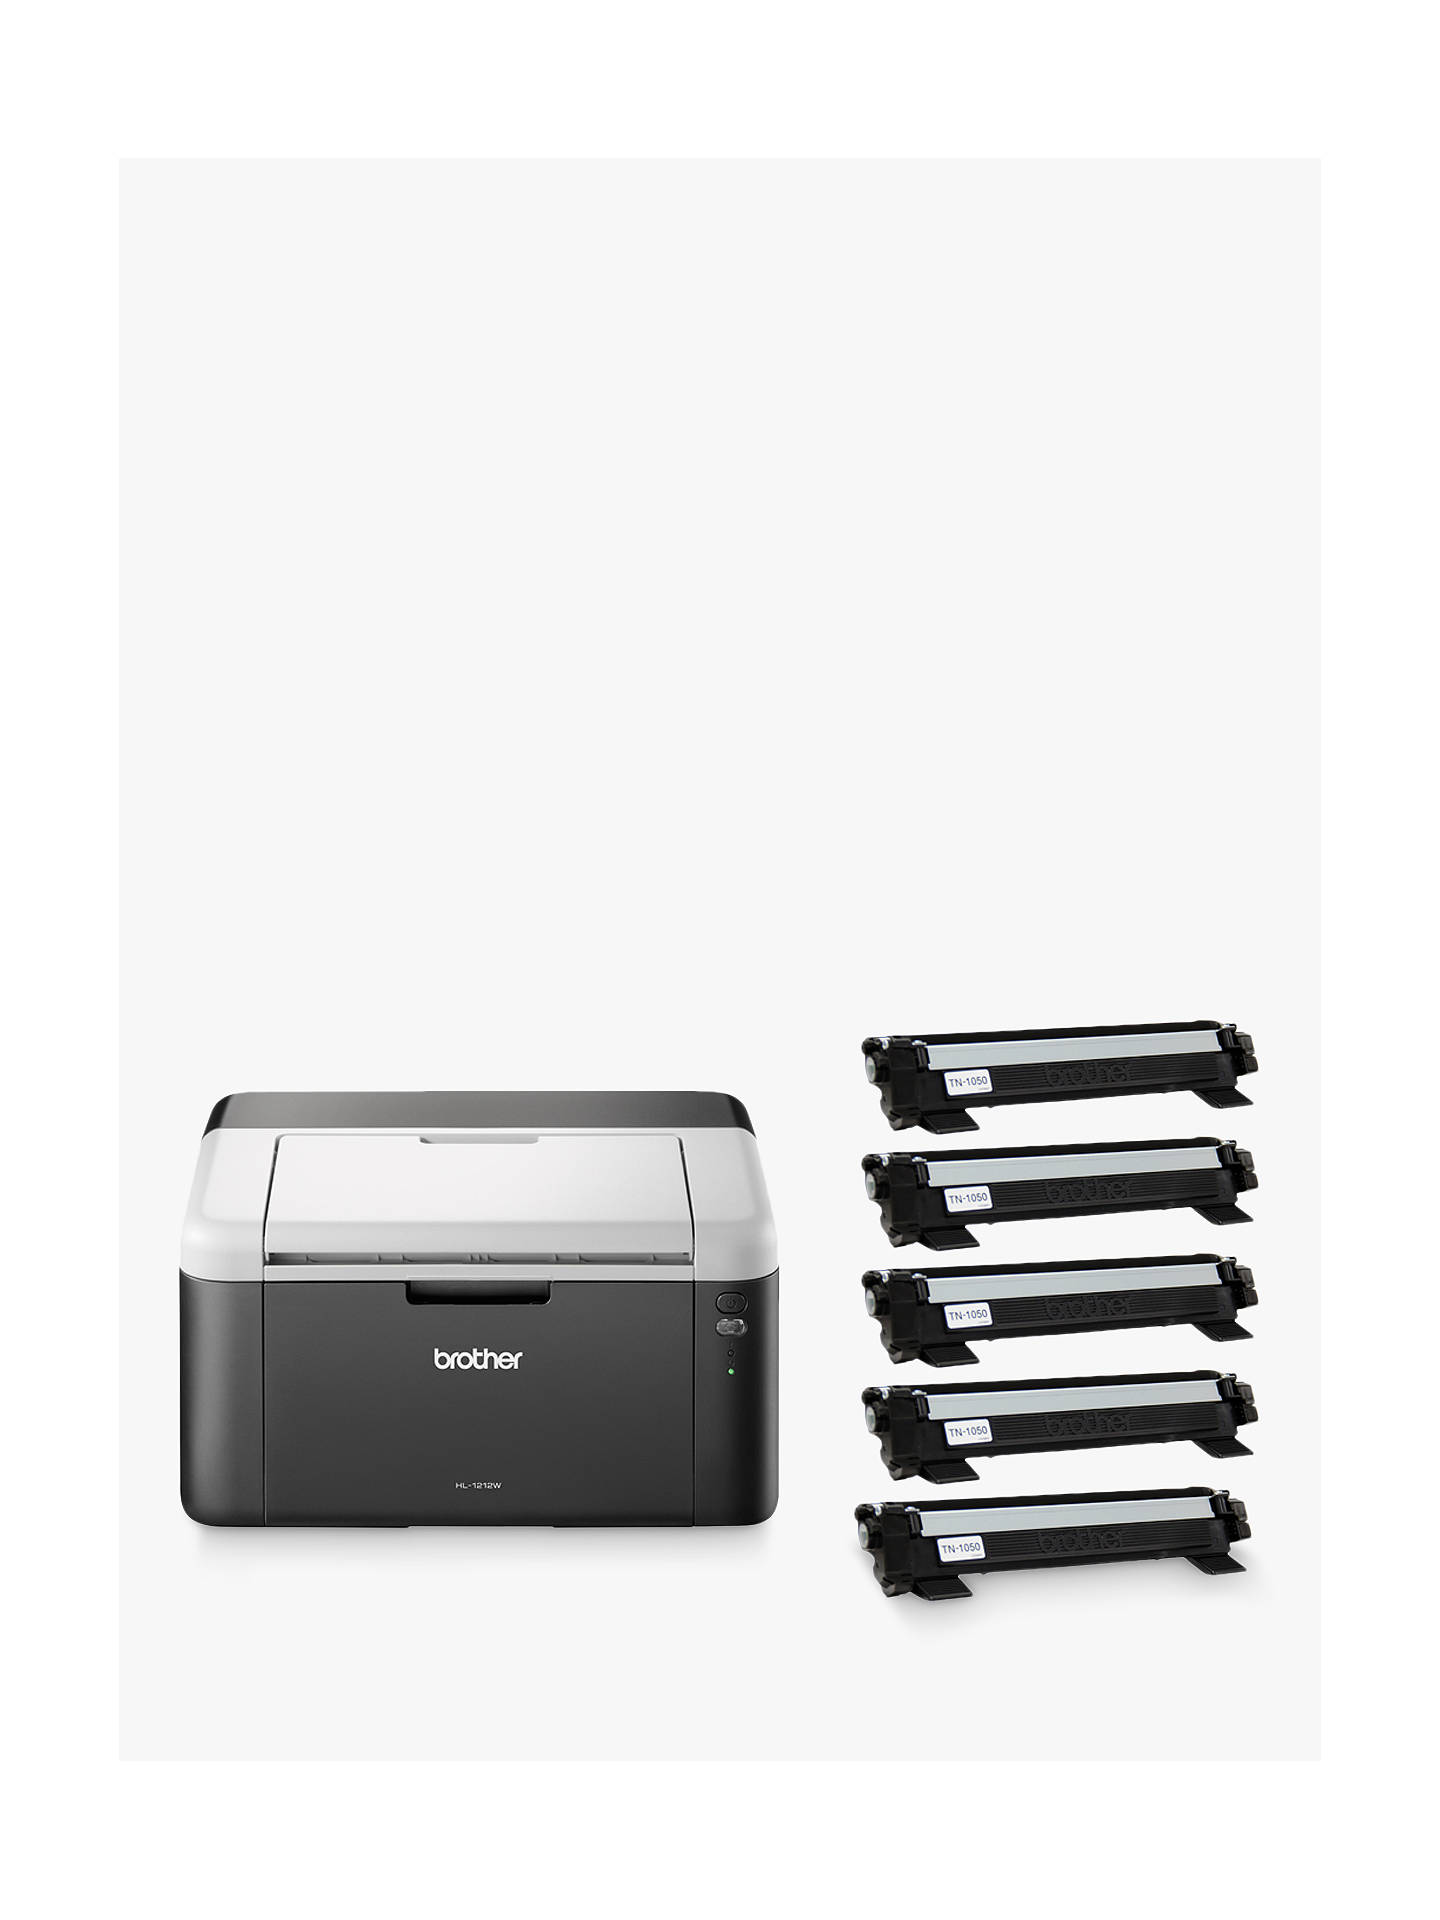 Buy Brother HL-1212W Wireless Mono Laser Printer with 5 Toners, Black Online at johnlewis.com